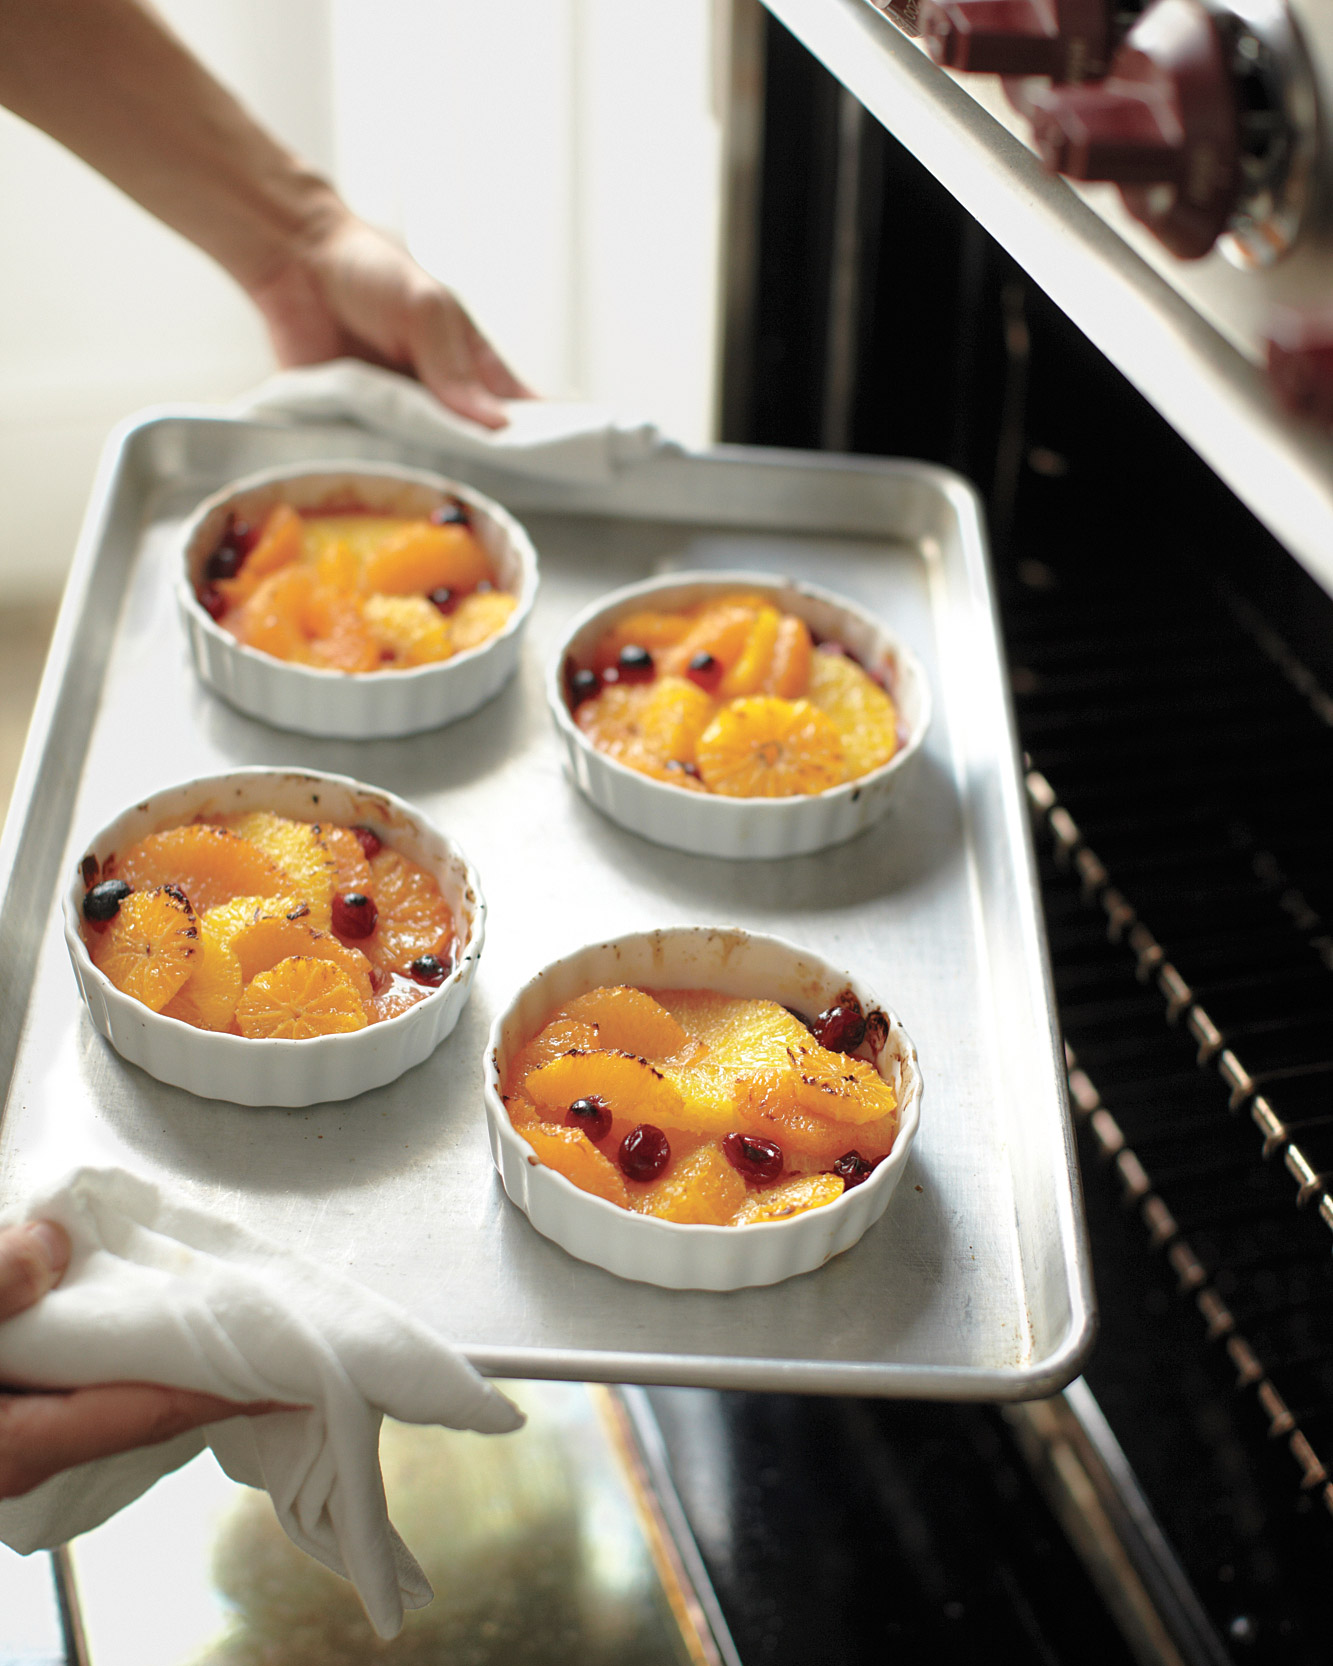 Broiled Citrus and Cranberries